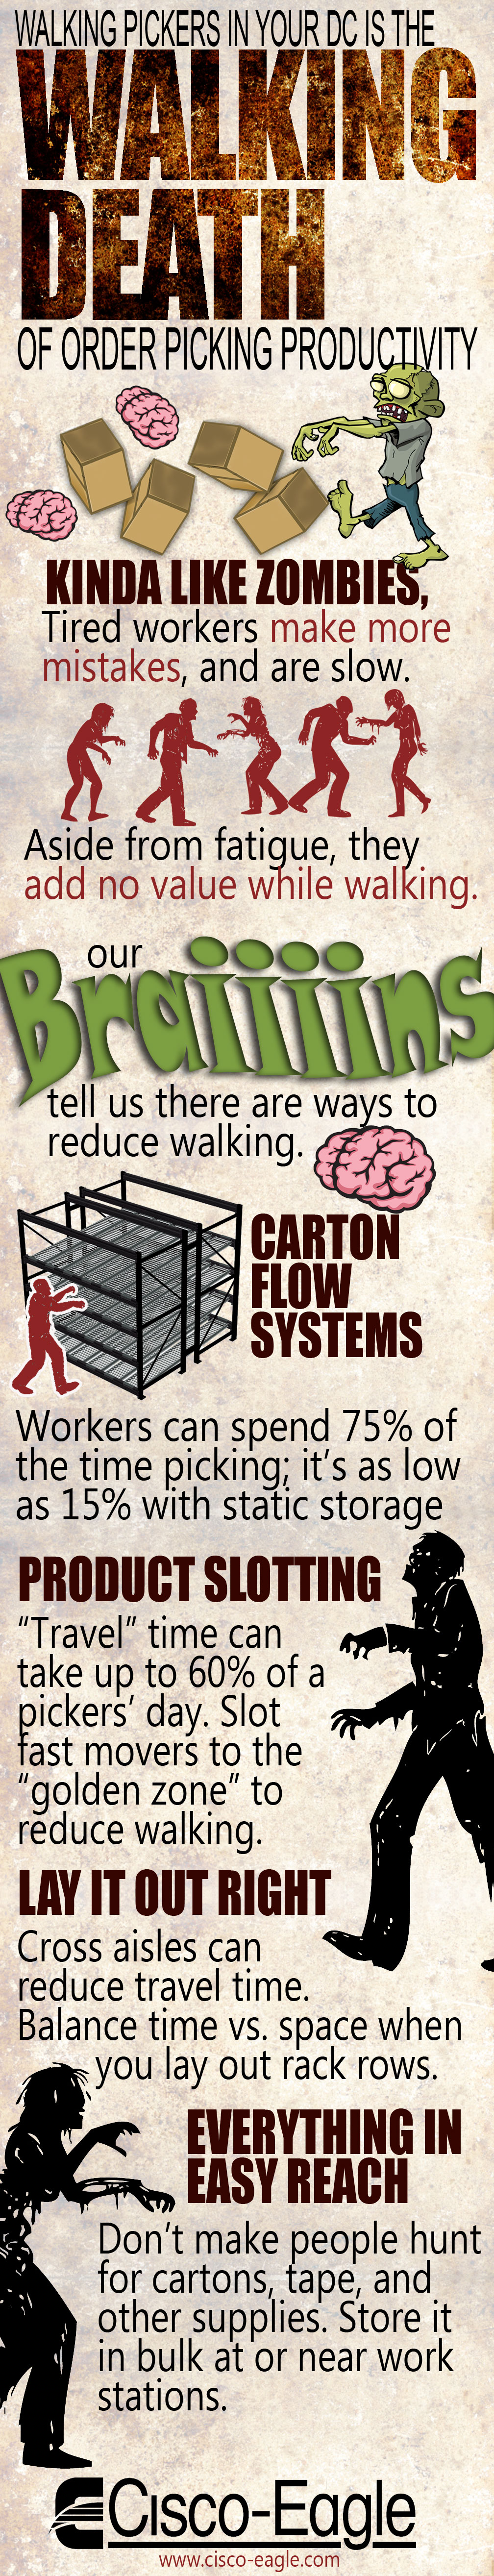 Infographic: Preventing Forklift/Pedestrian accidents